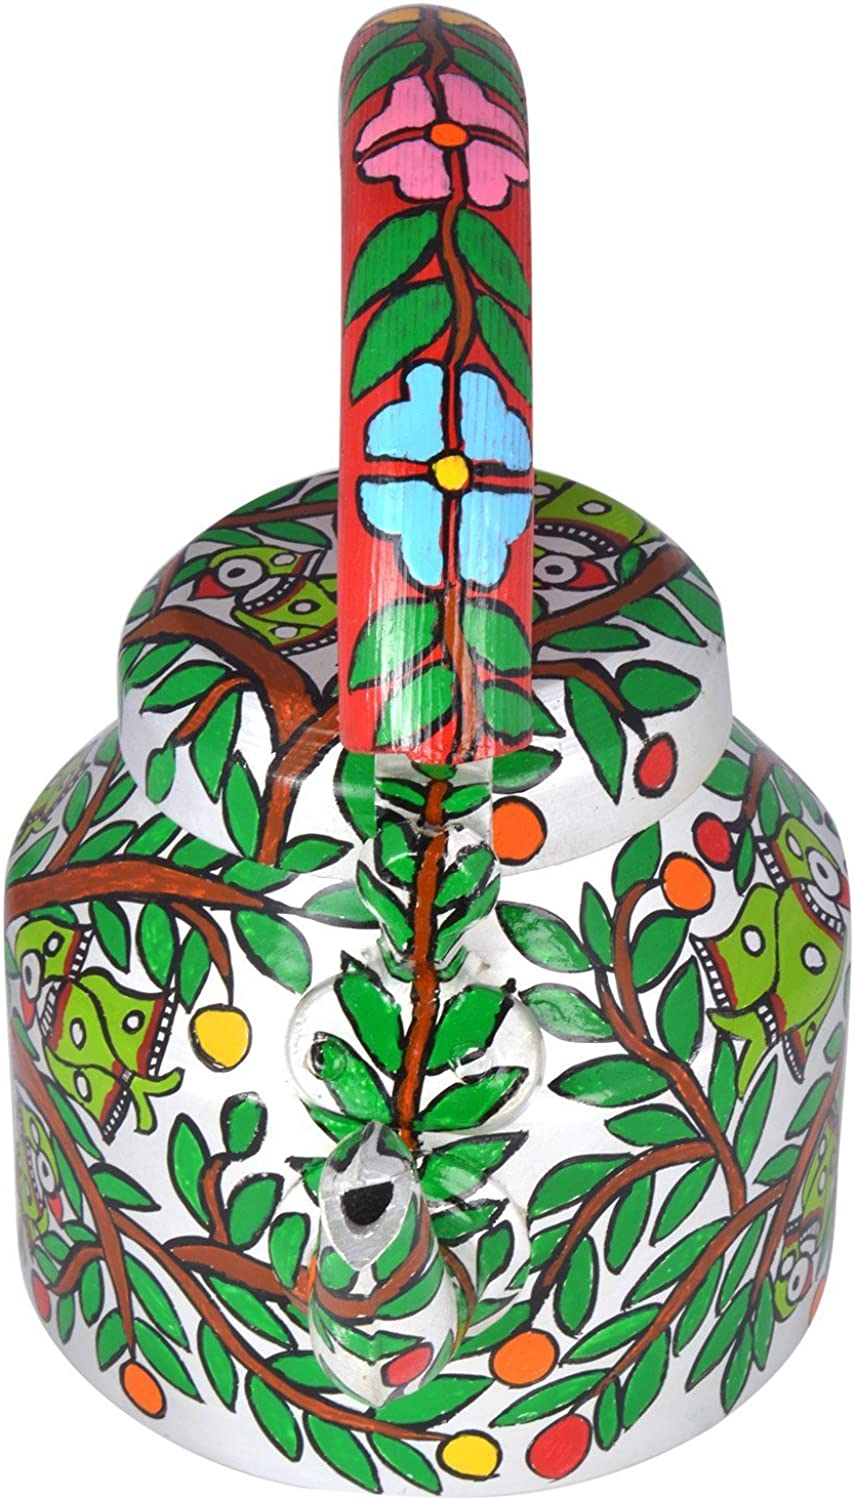 Hand Painted Steel Tea Kettle Parreds On The Tree